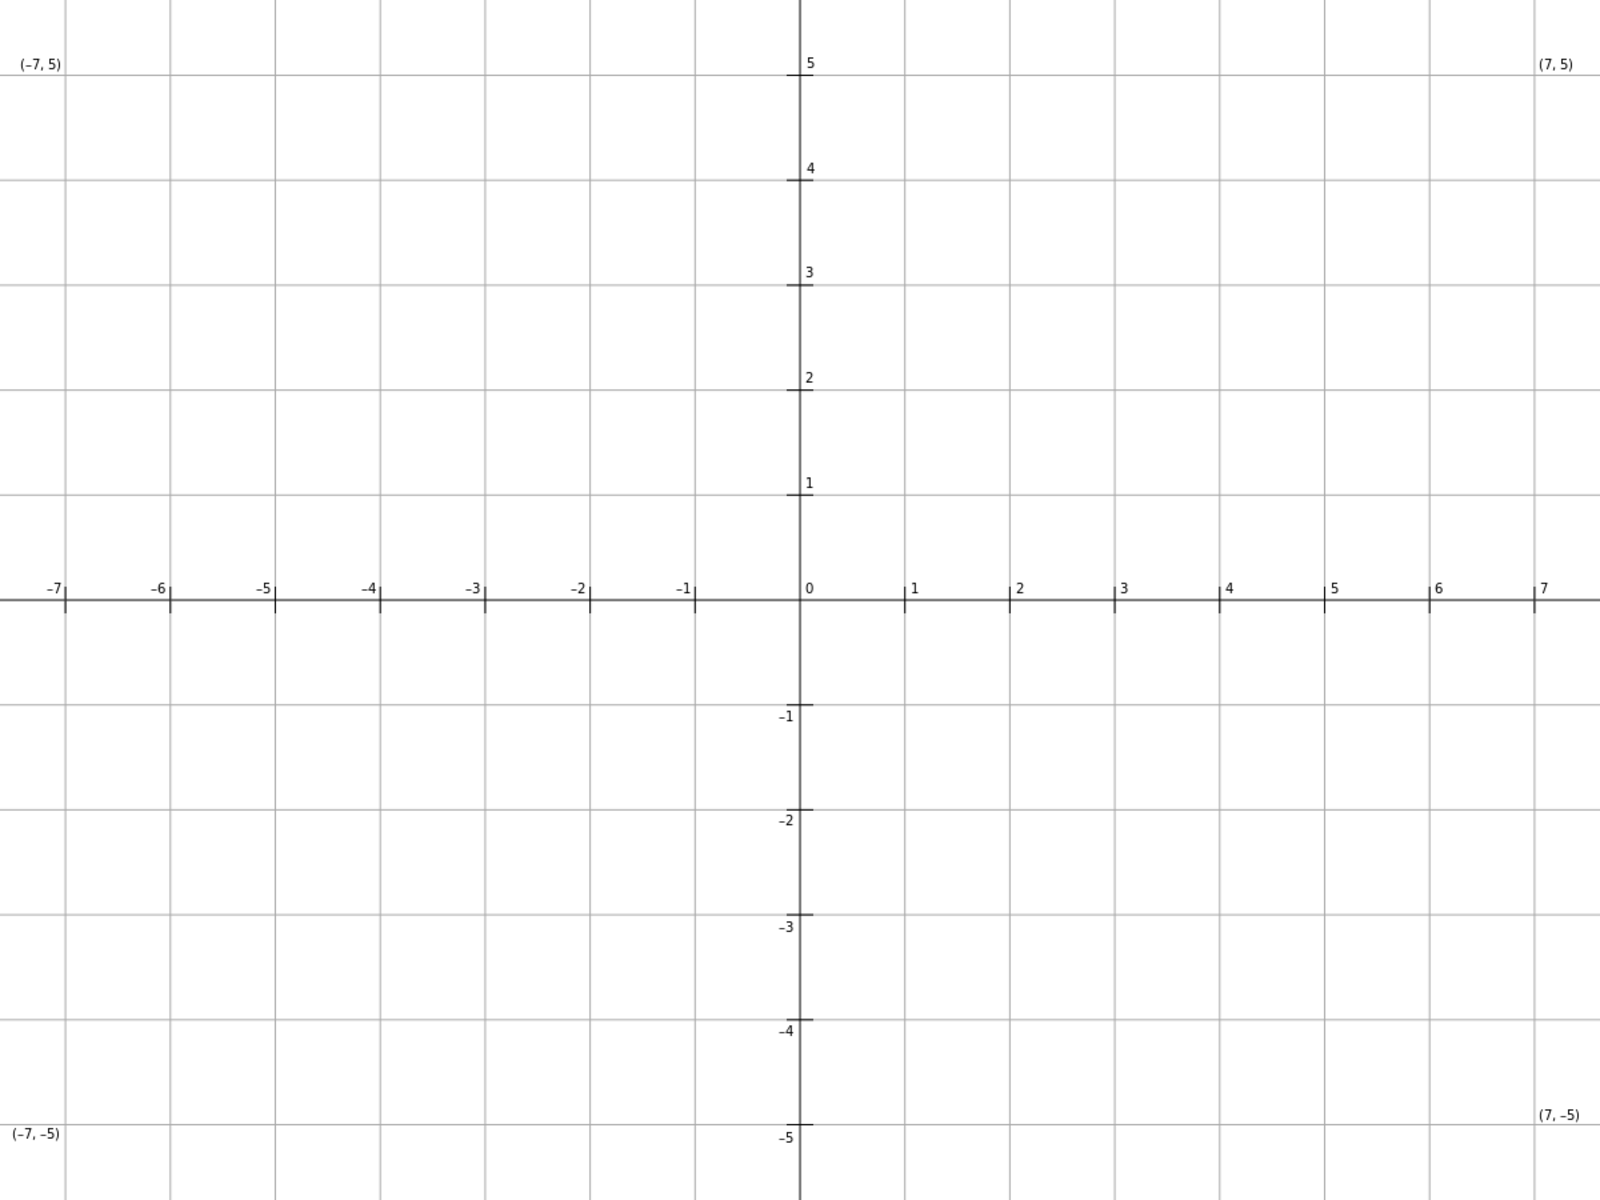 Svg grid. Index of images thumb